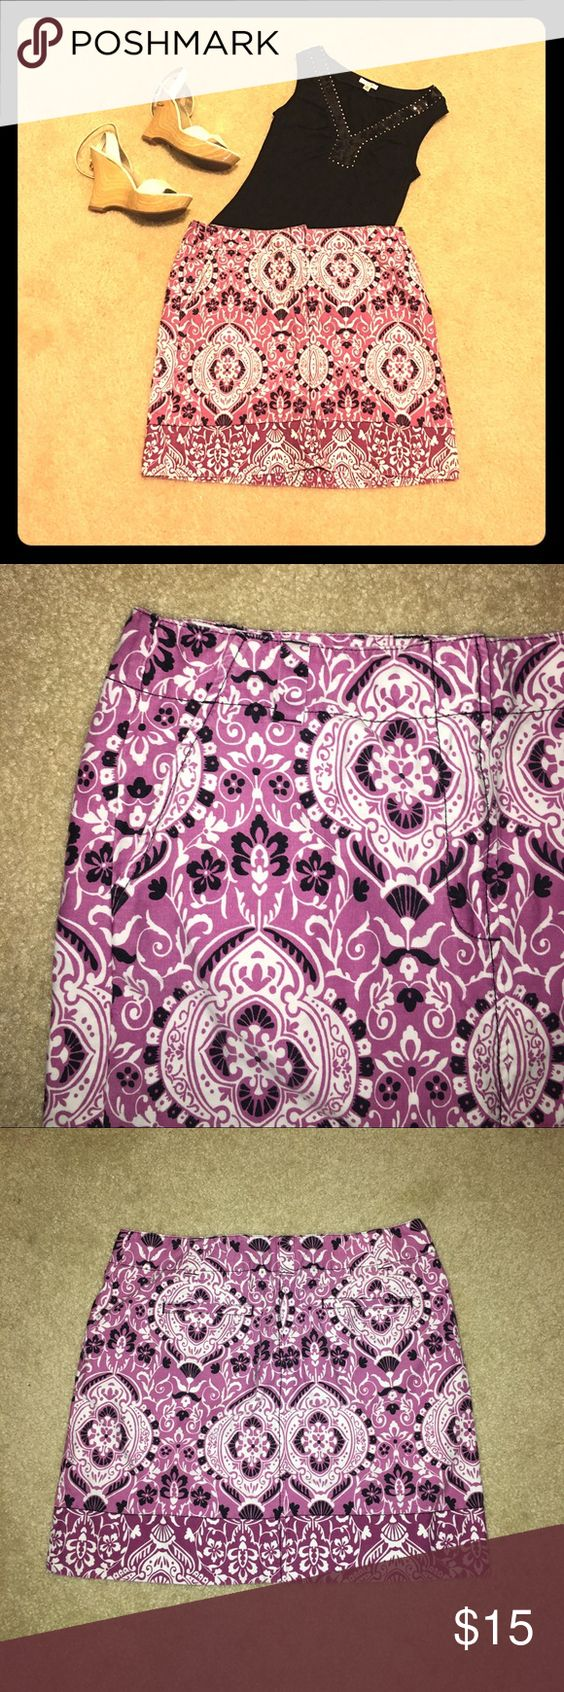 LOFT lilac, black and white skirt LOFT 100% cotton skirt. 4 pockets and zipper in the front. Good condition LOFT Skirts